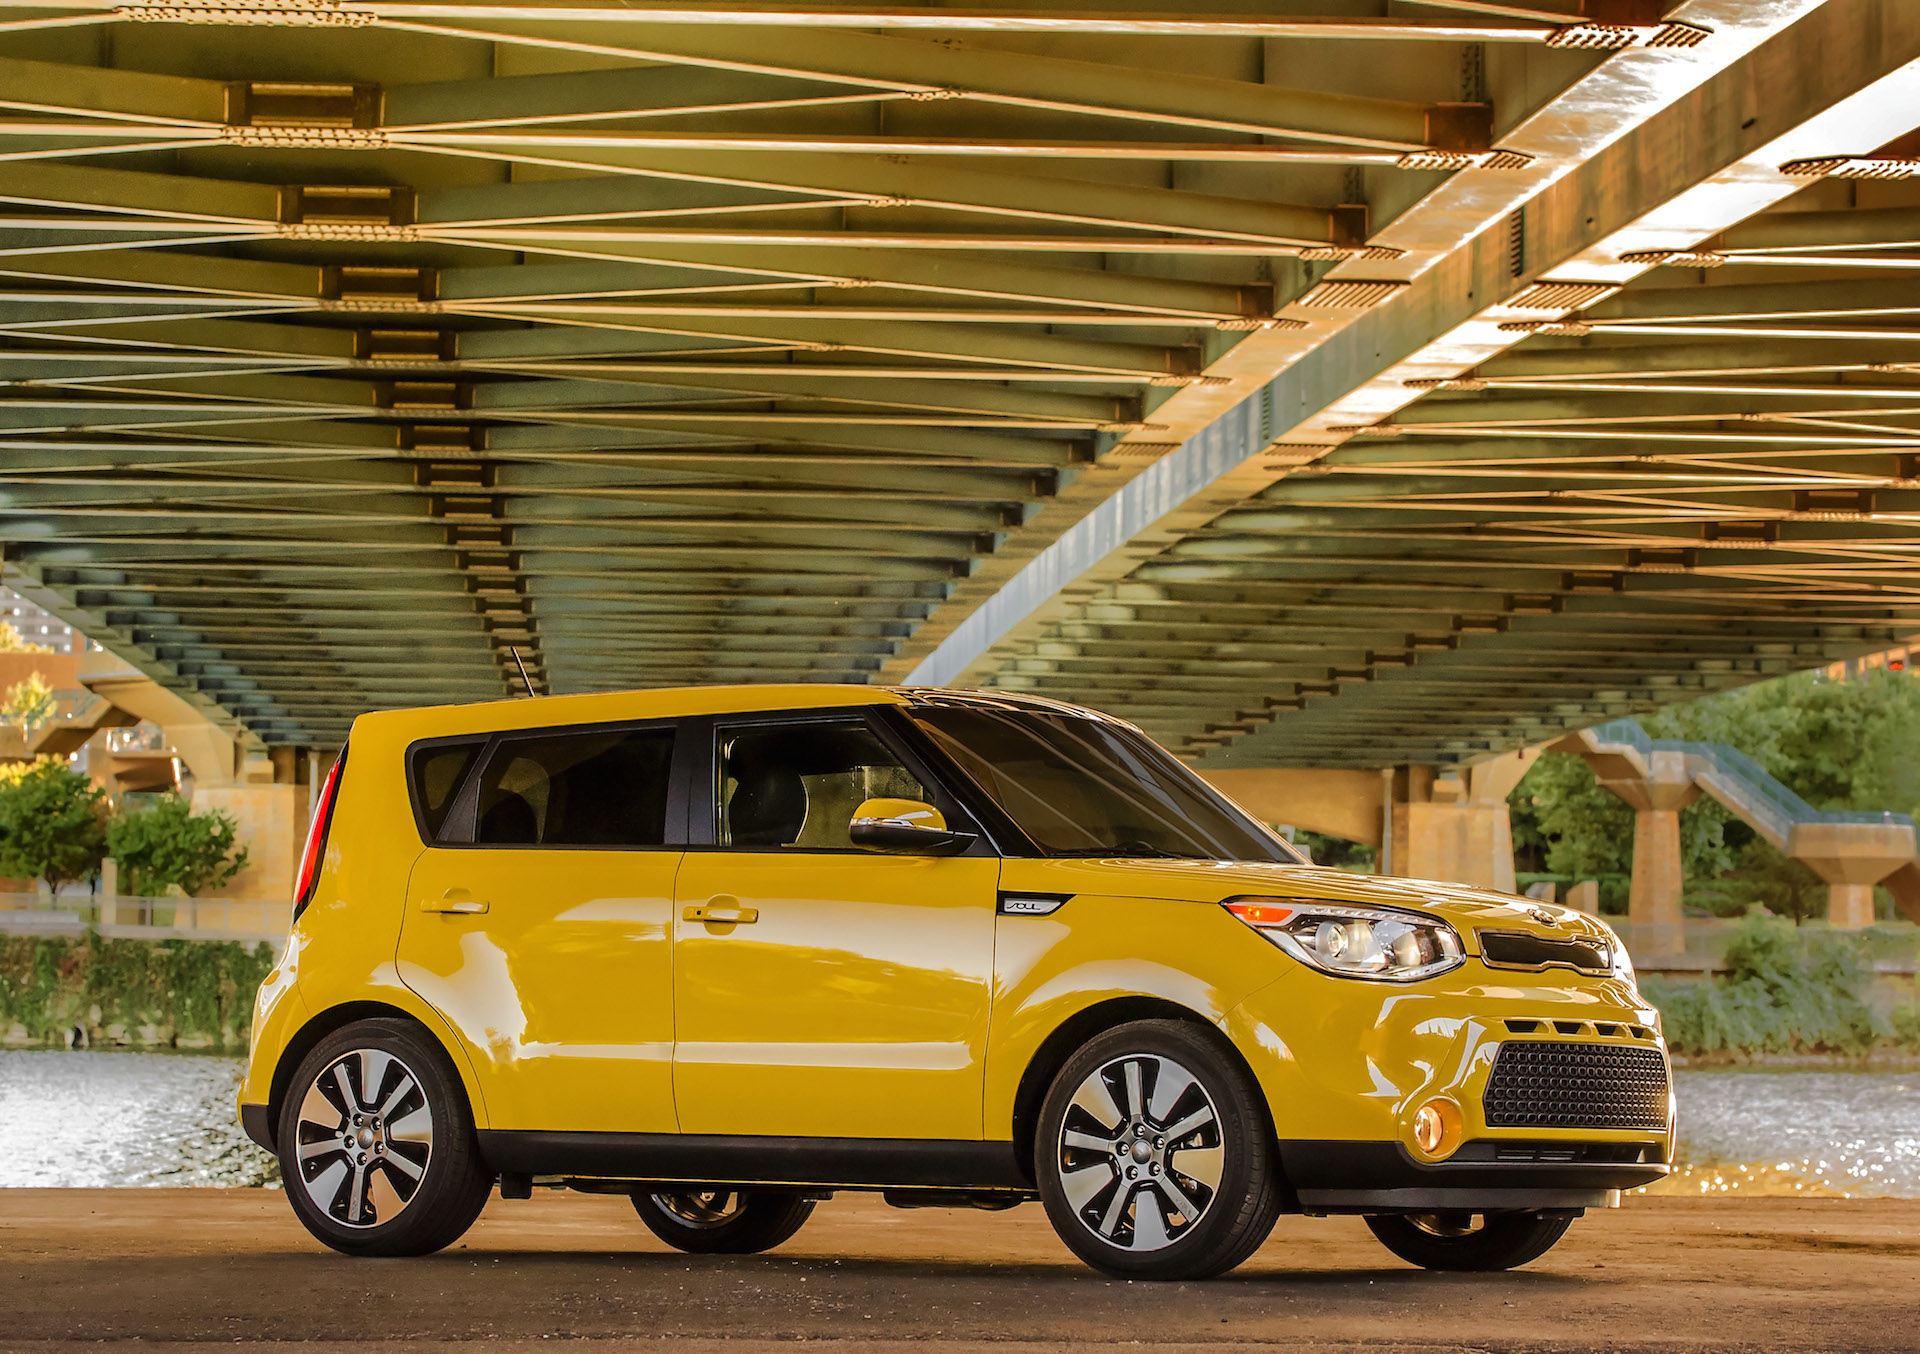 Kia Soul: Component Replacement after Deployment